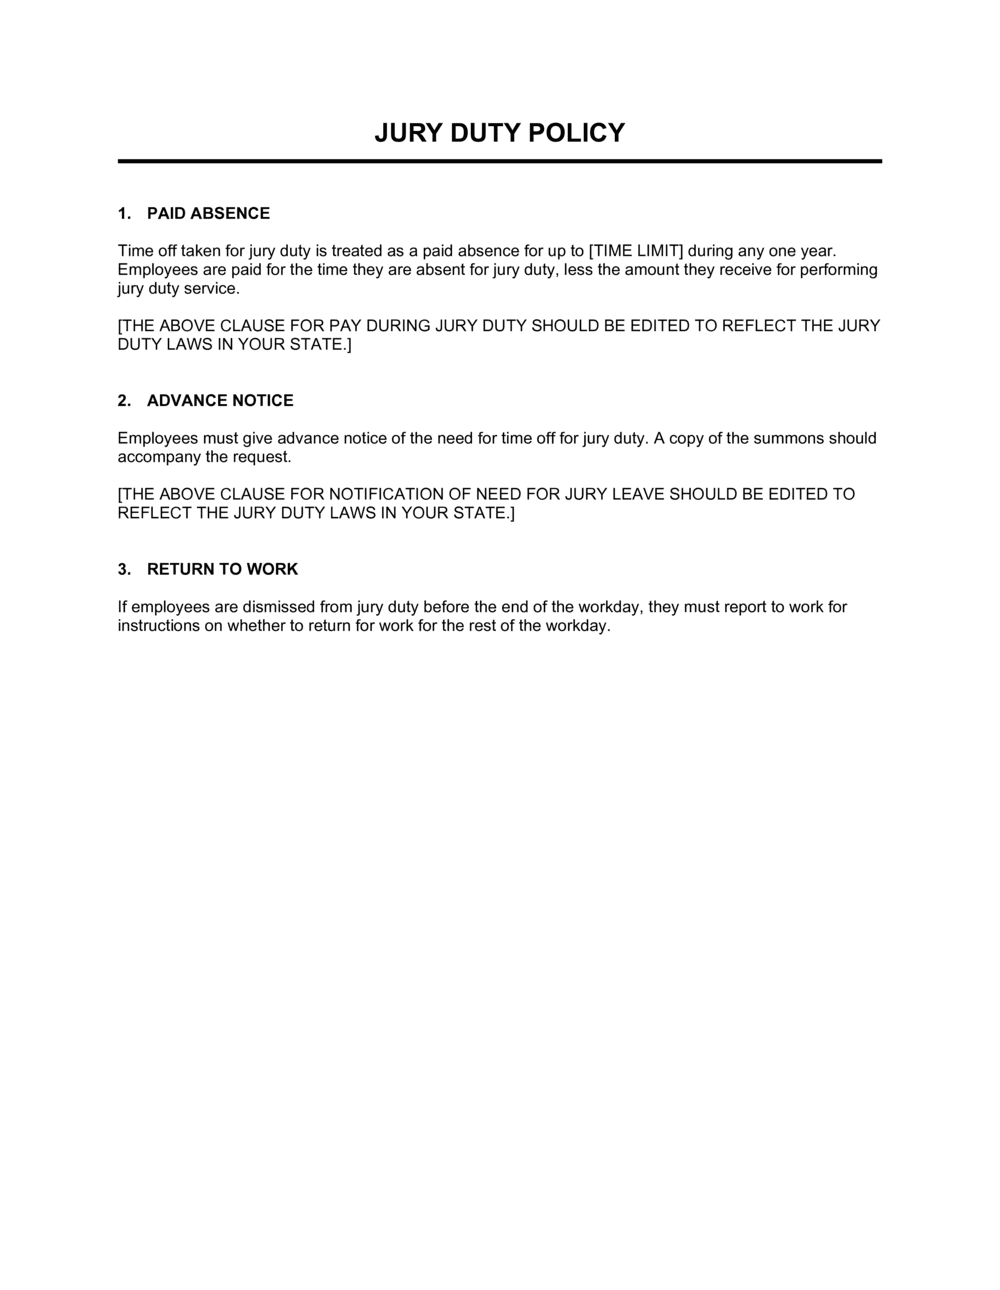 Business-in-a-Box's Jury Duty Policy Template